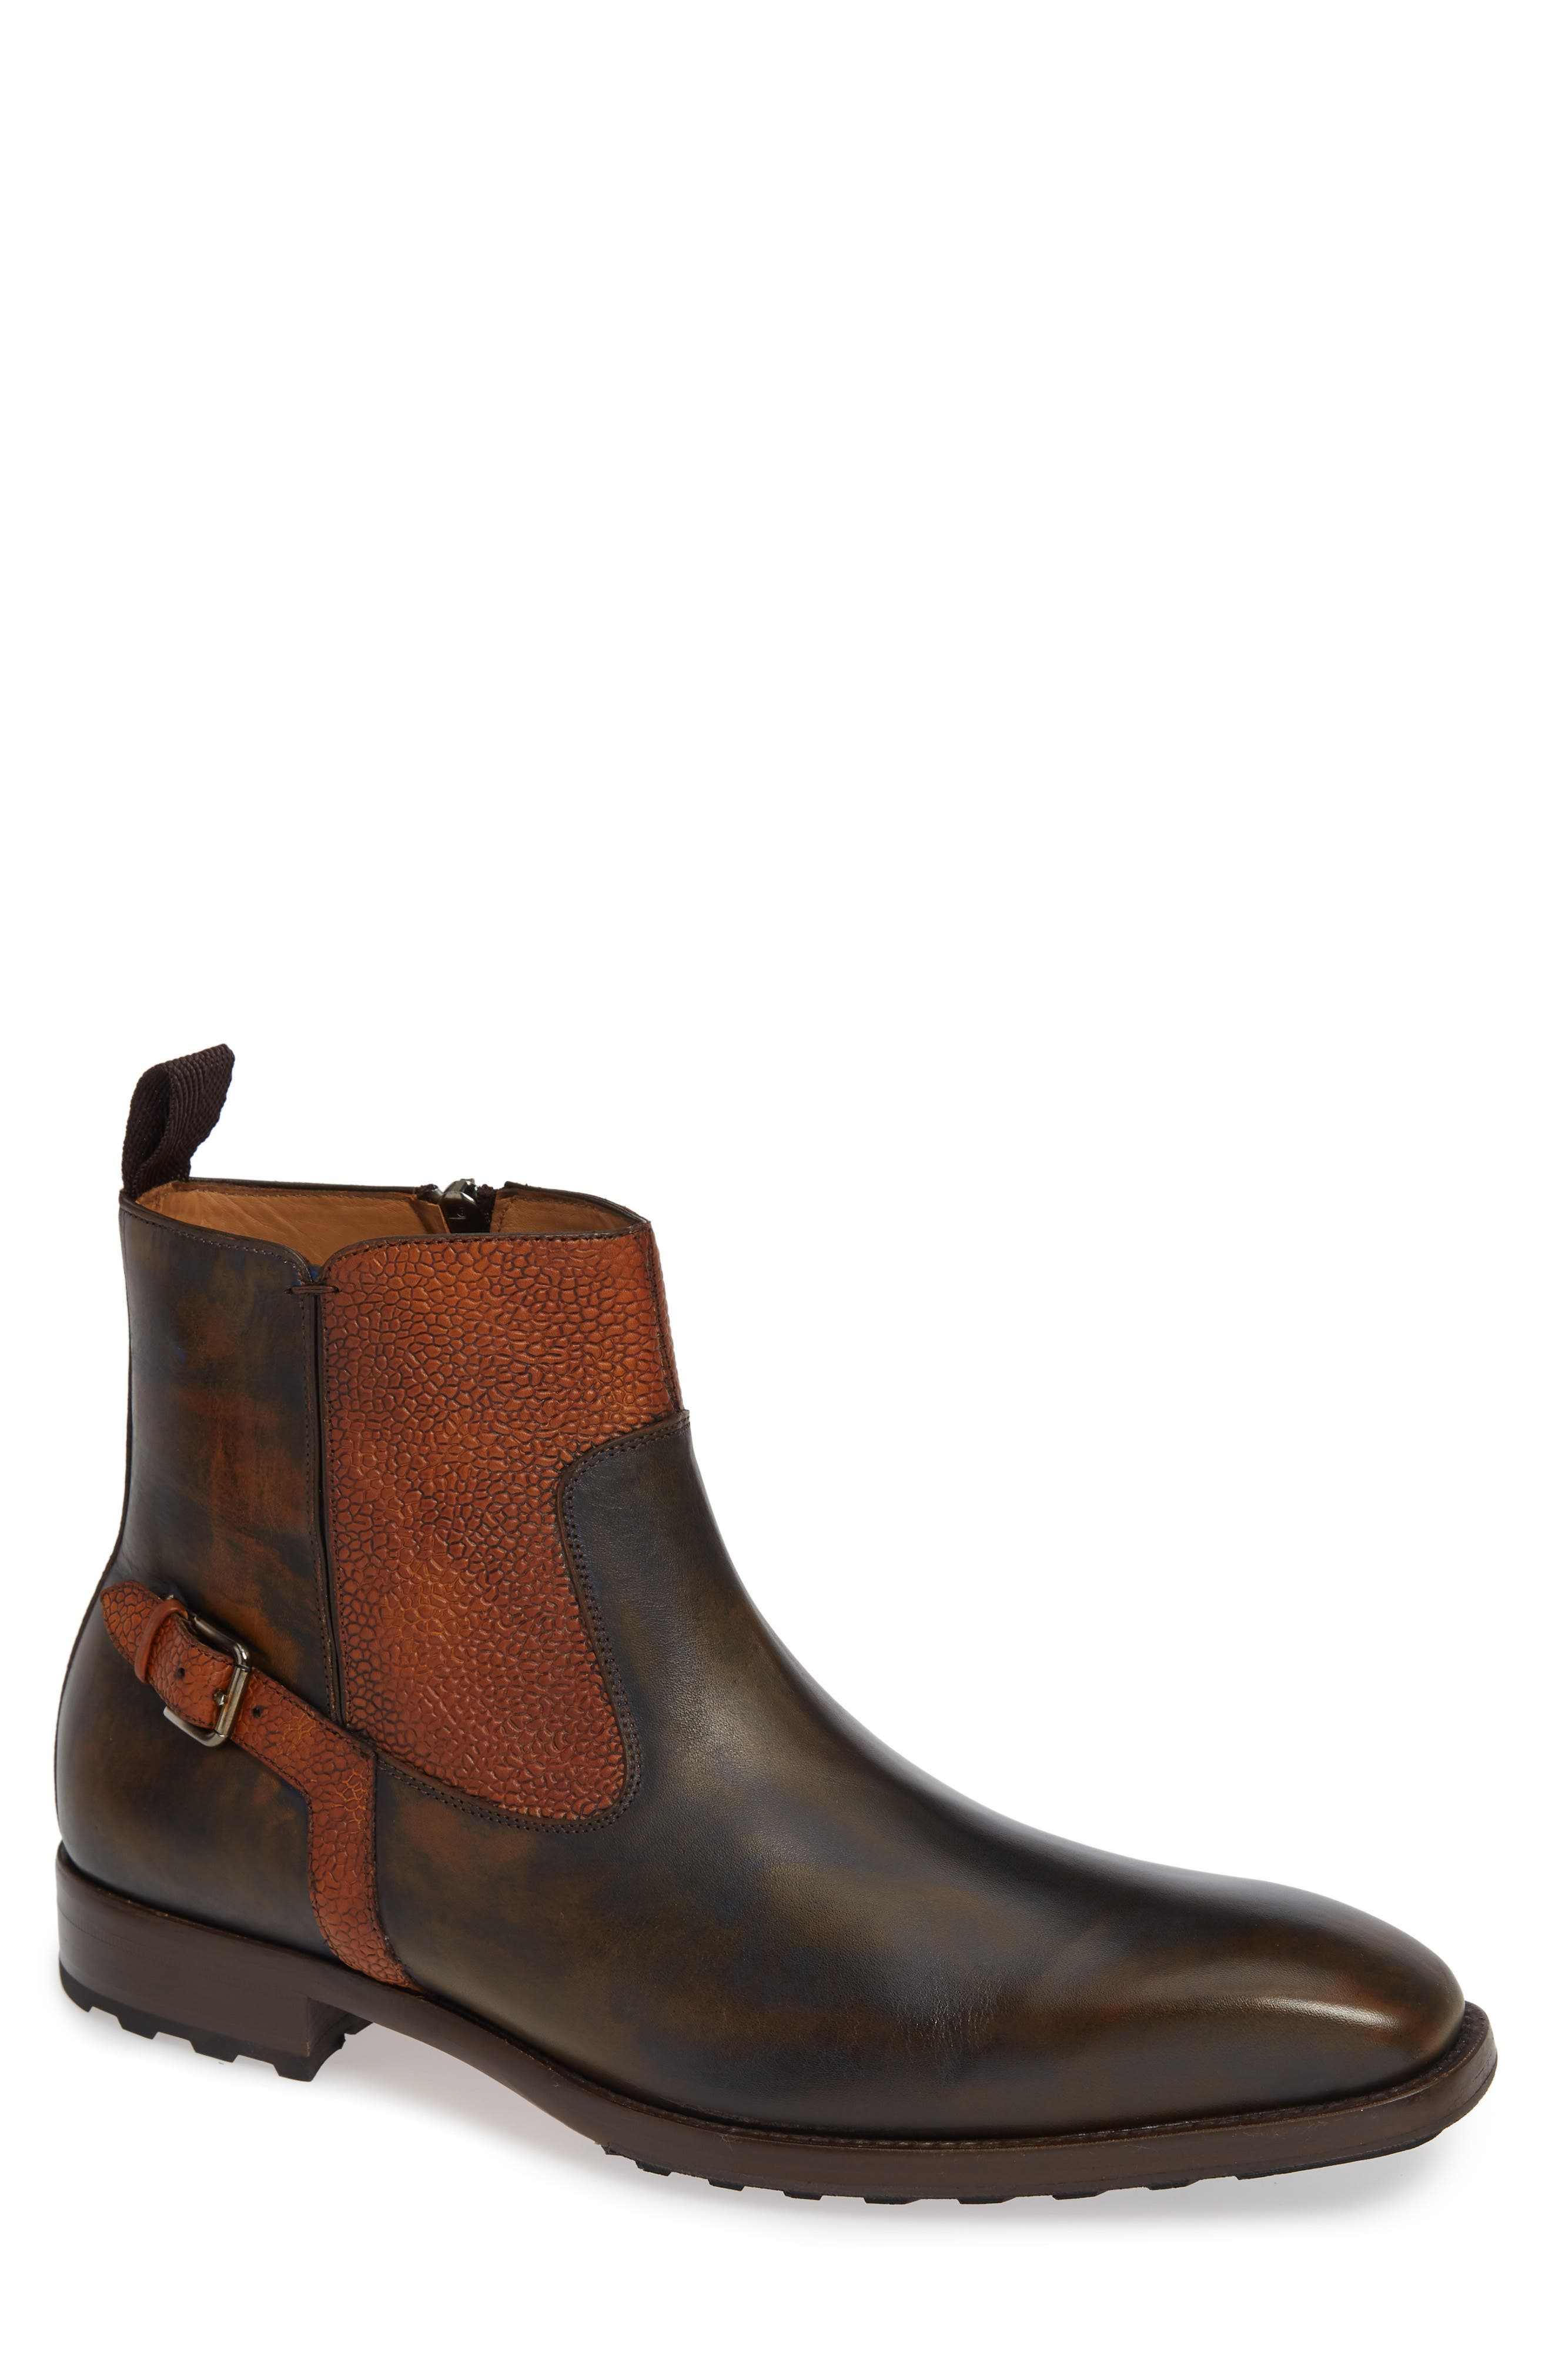 Mezlan Pitt Mixed Finish Boot, Brown